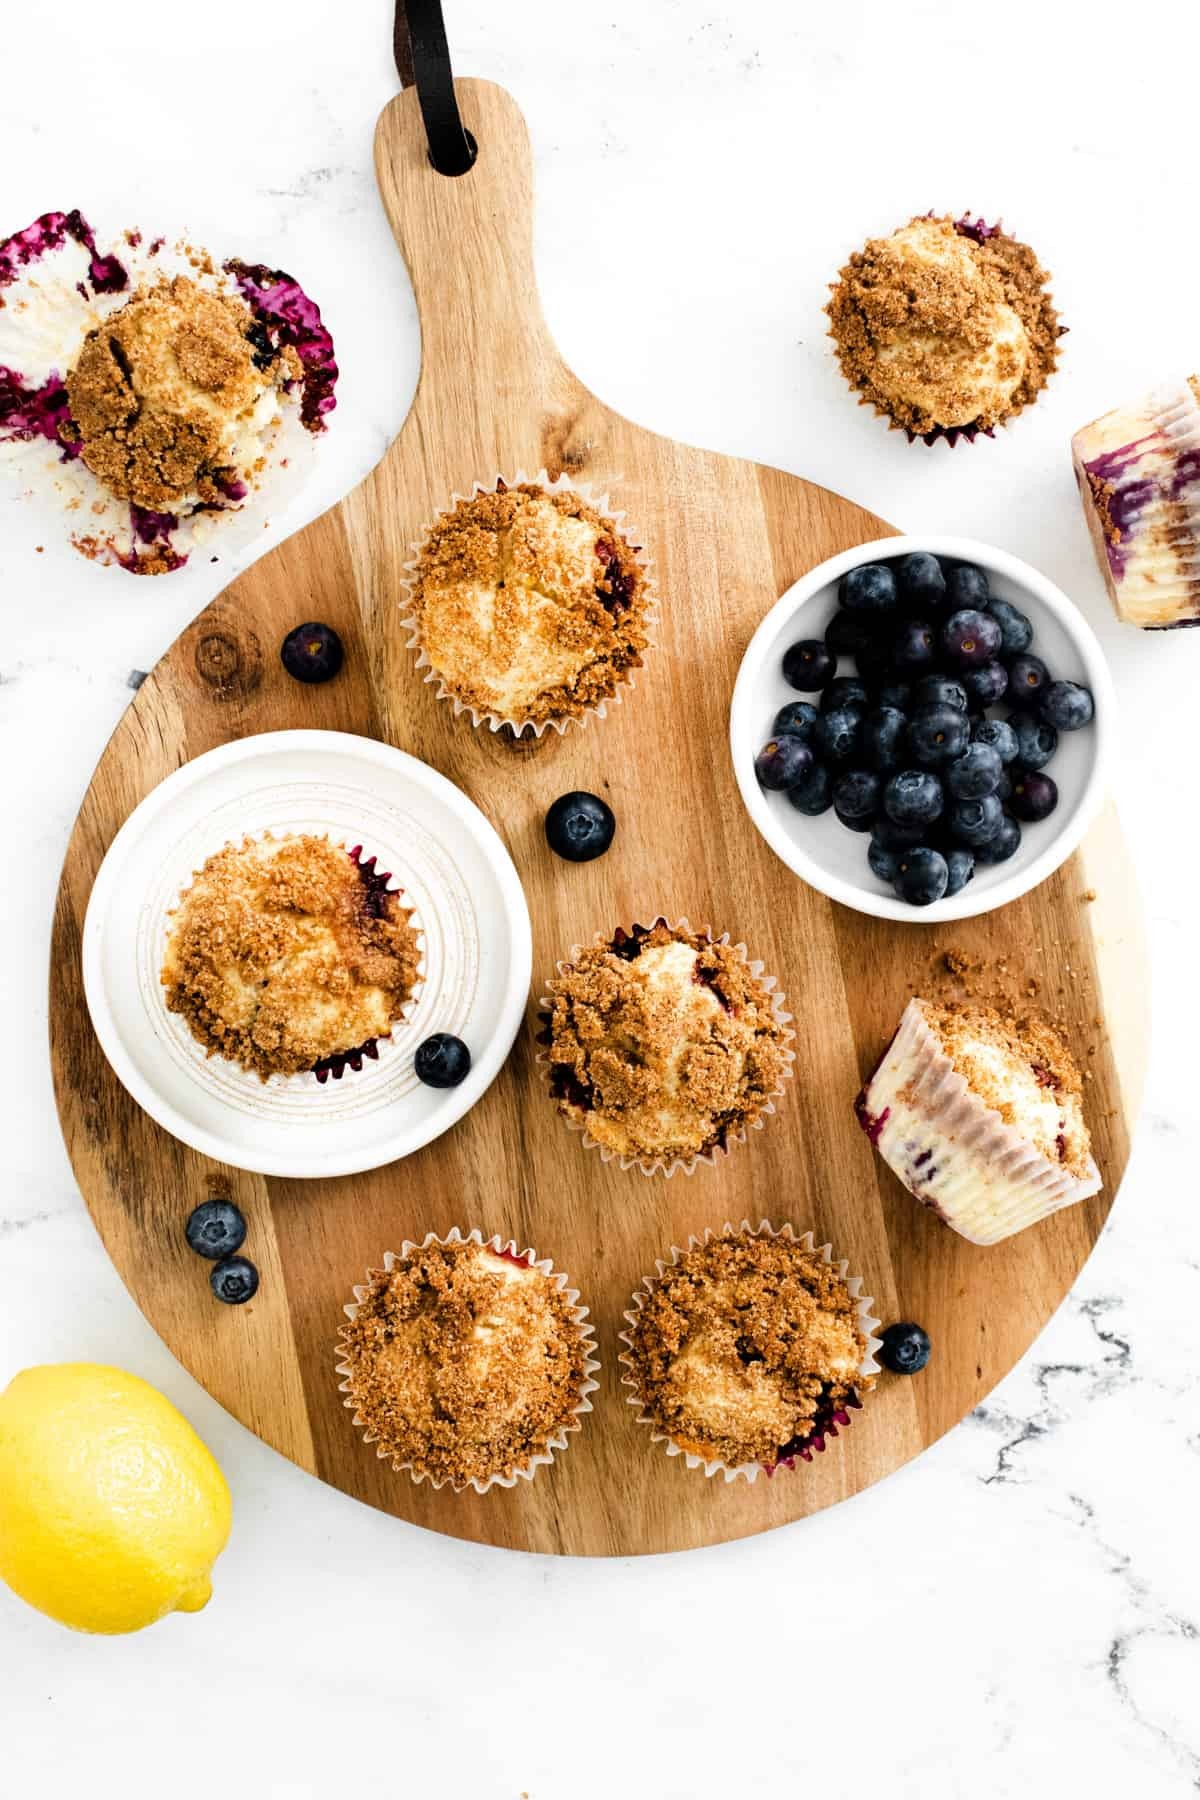 Overhead photo of muffins on wooden board with blueberries